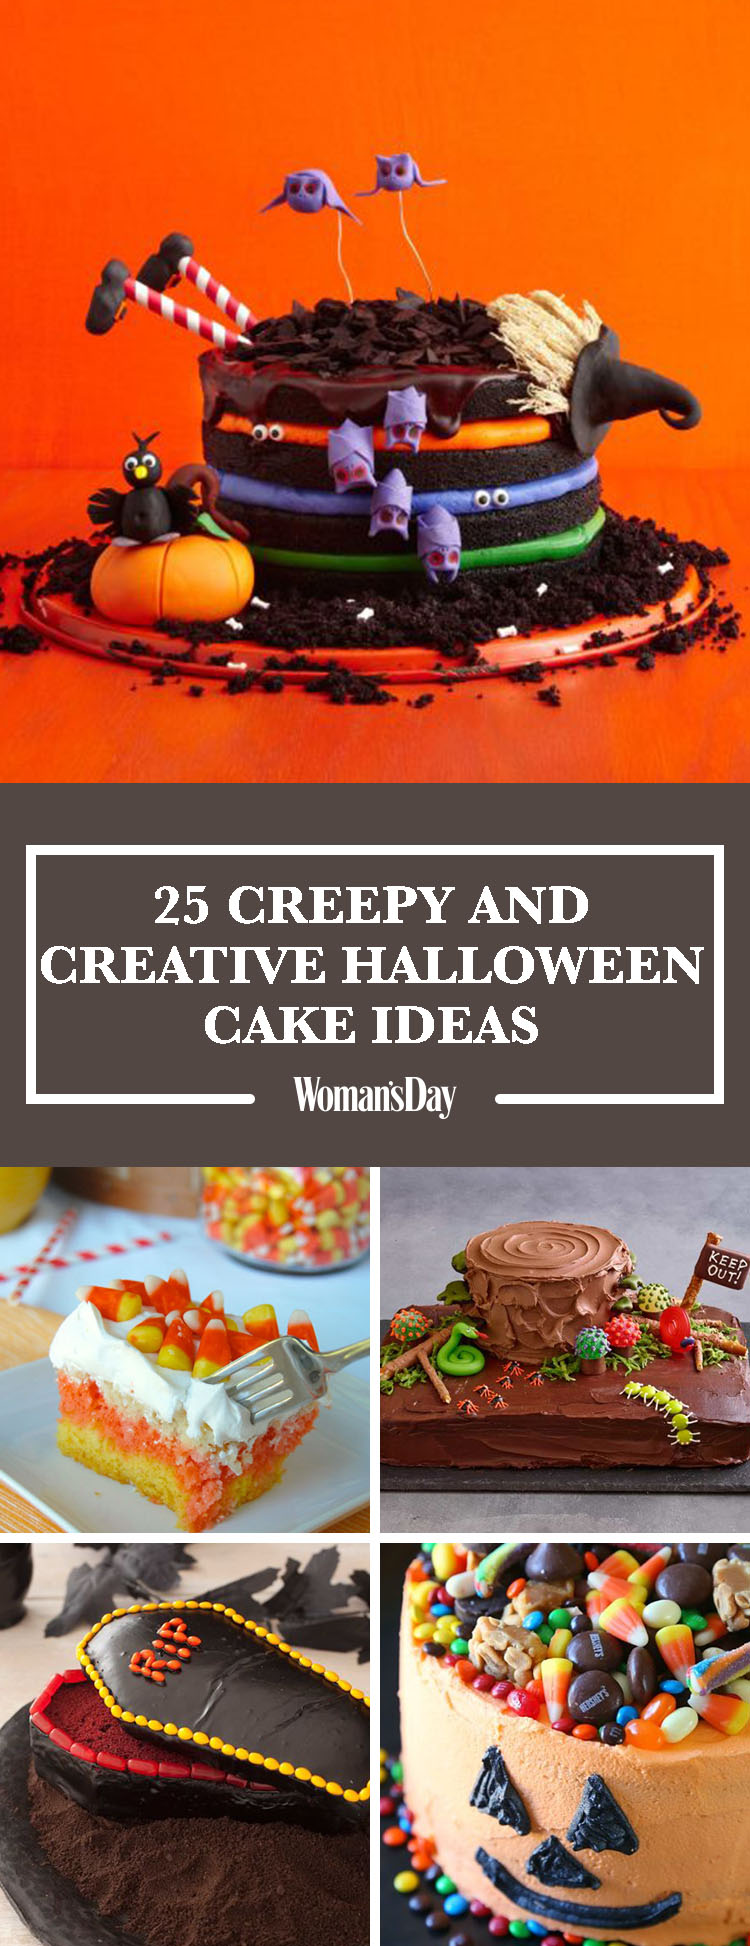 30 easy halloween cakes recipes ideas for halloween cake decorating - Simple Halloween Cake Decorating Ideas